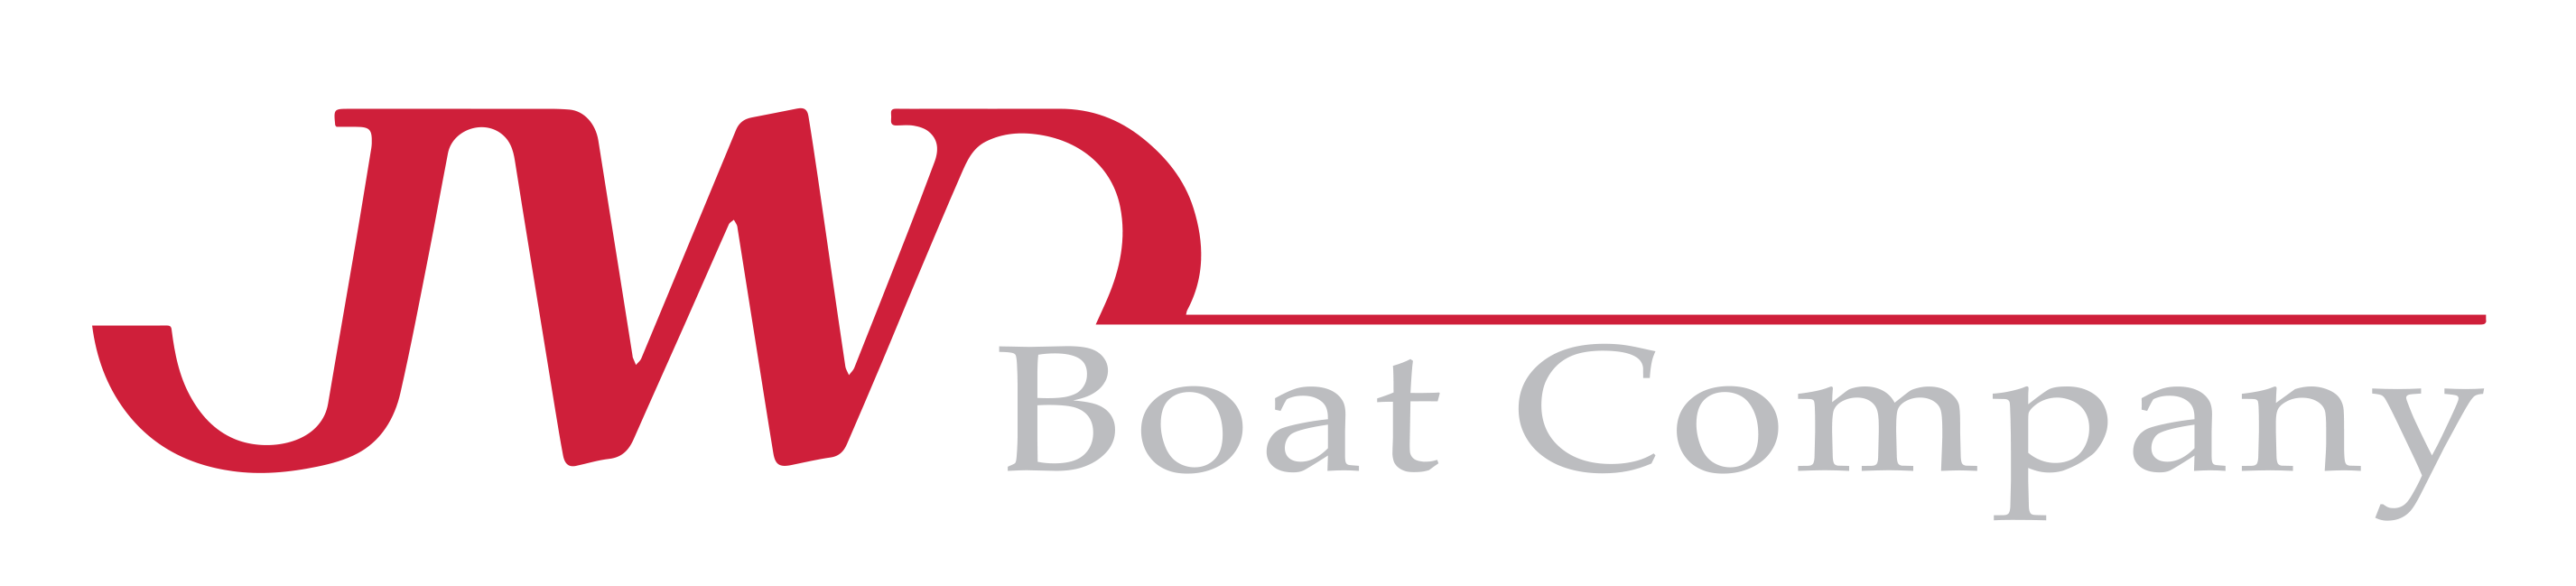 John Williams Boat Company